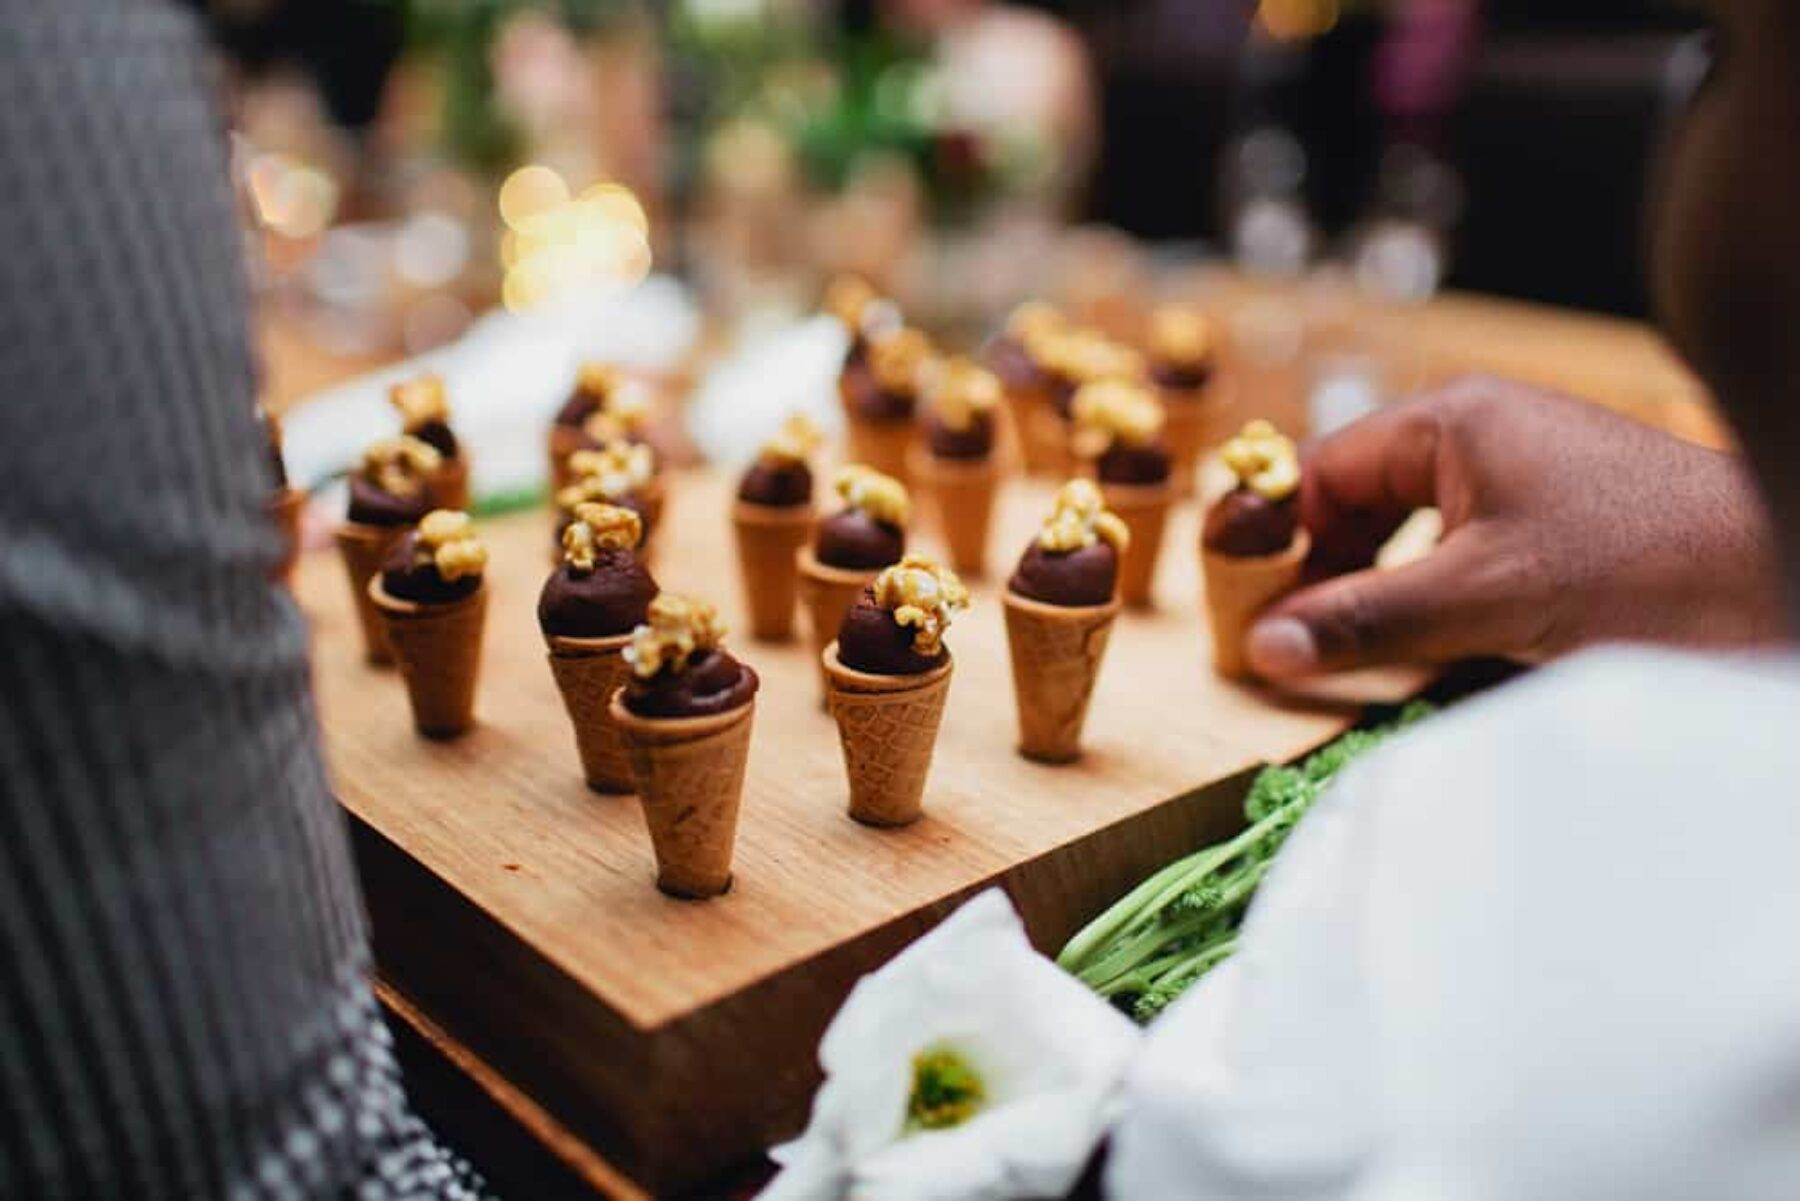 dessert canapes - mini ice cream cones